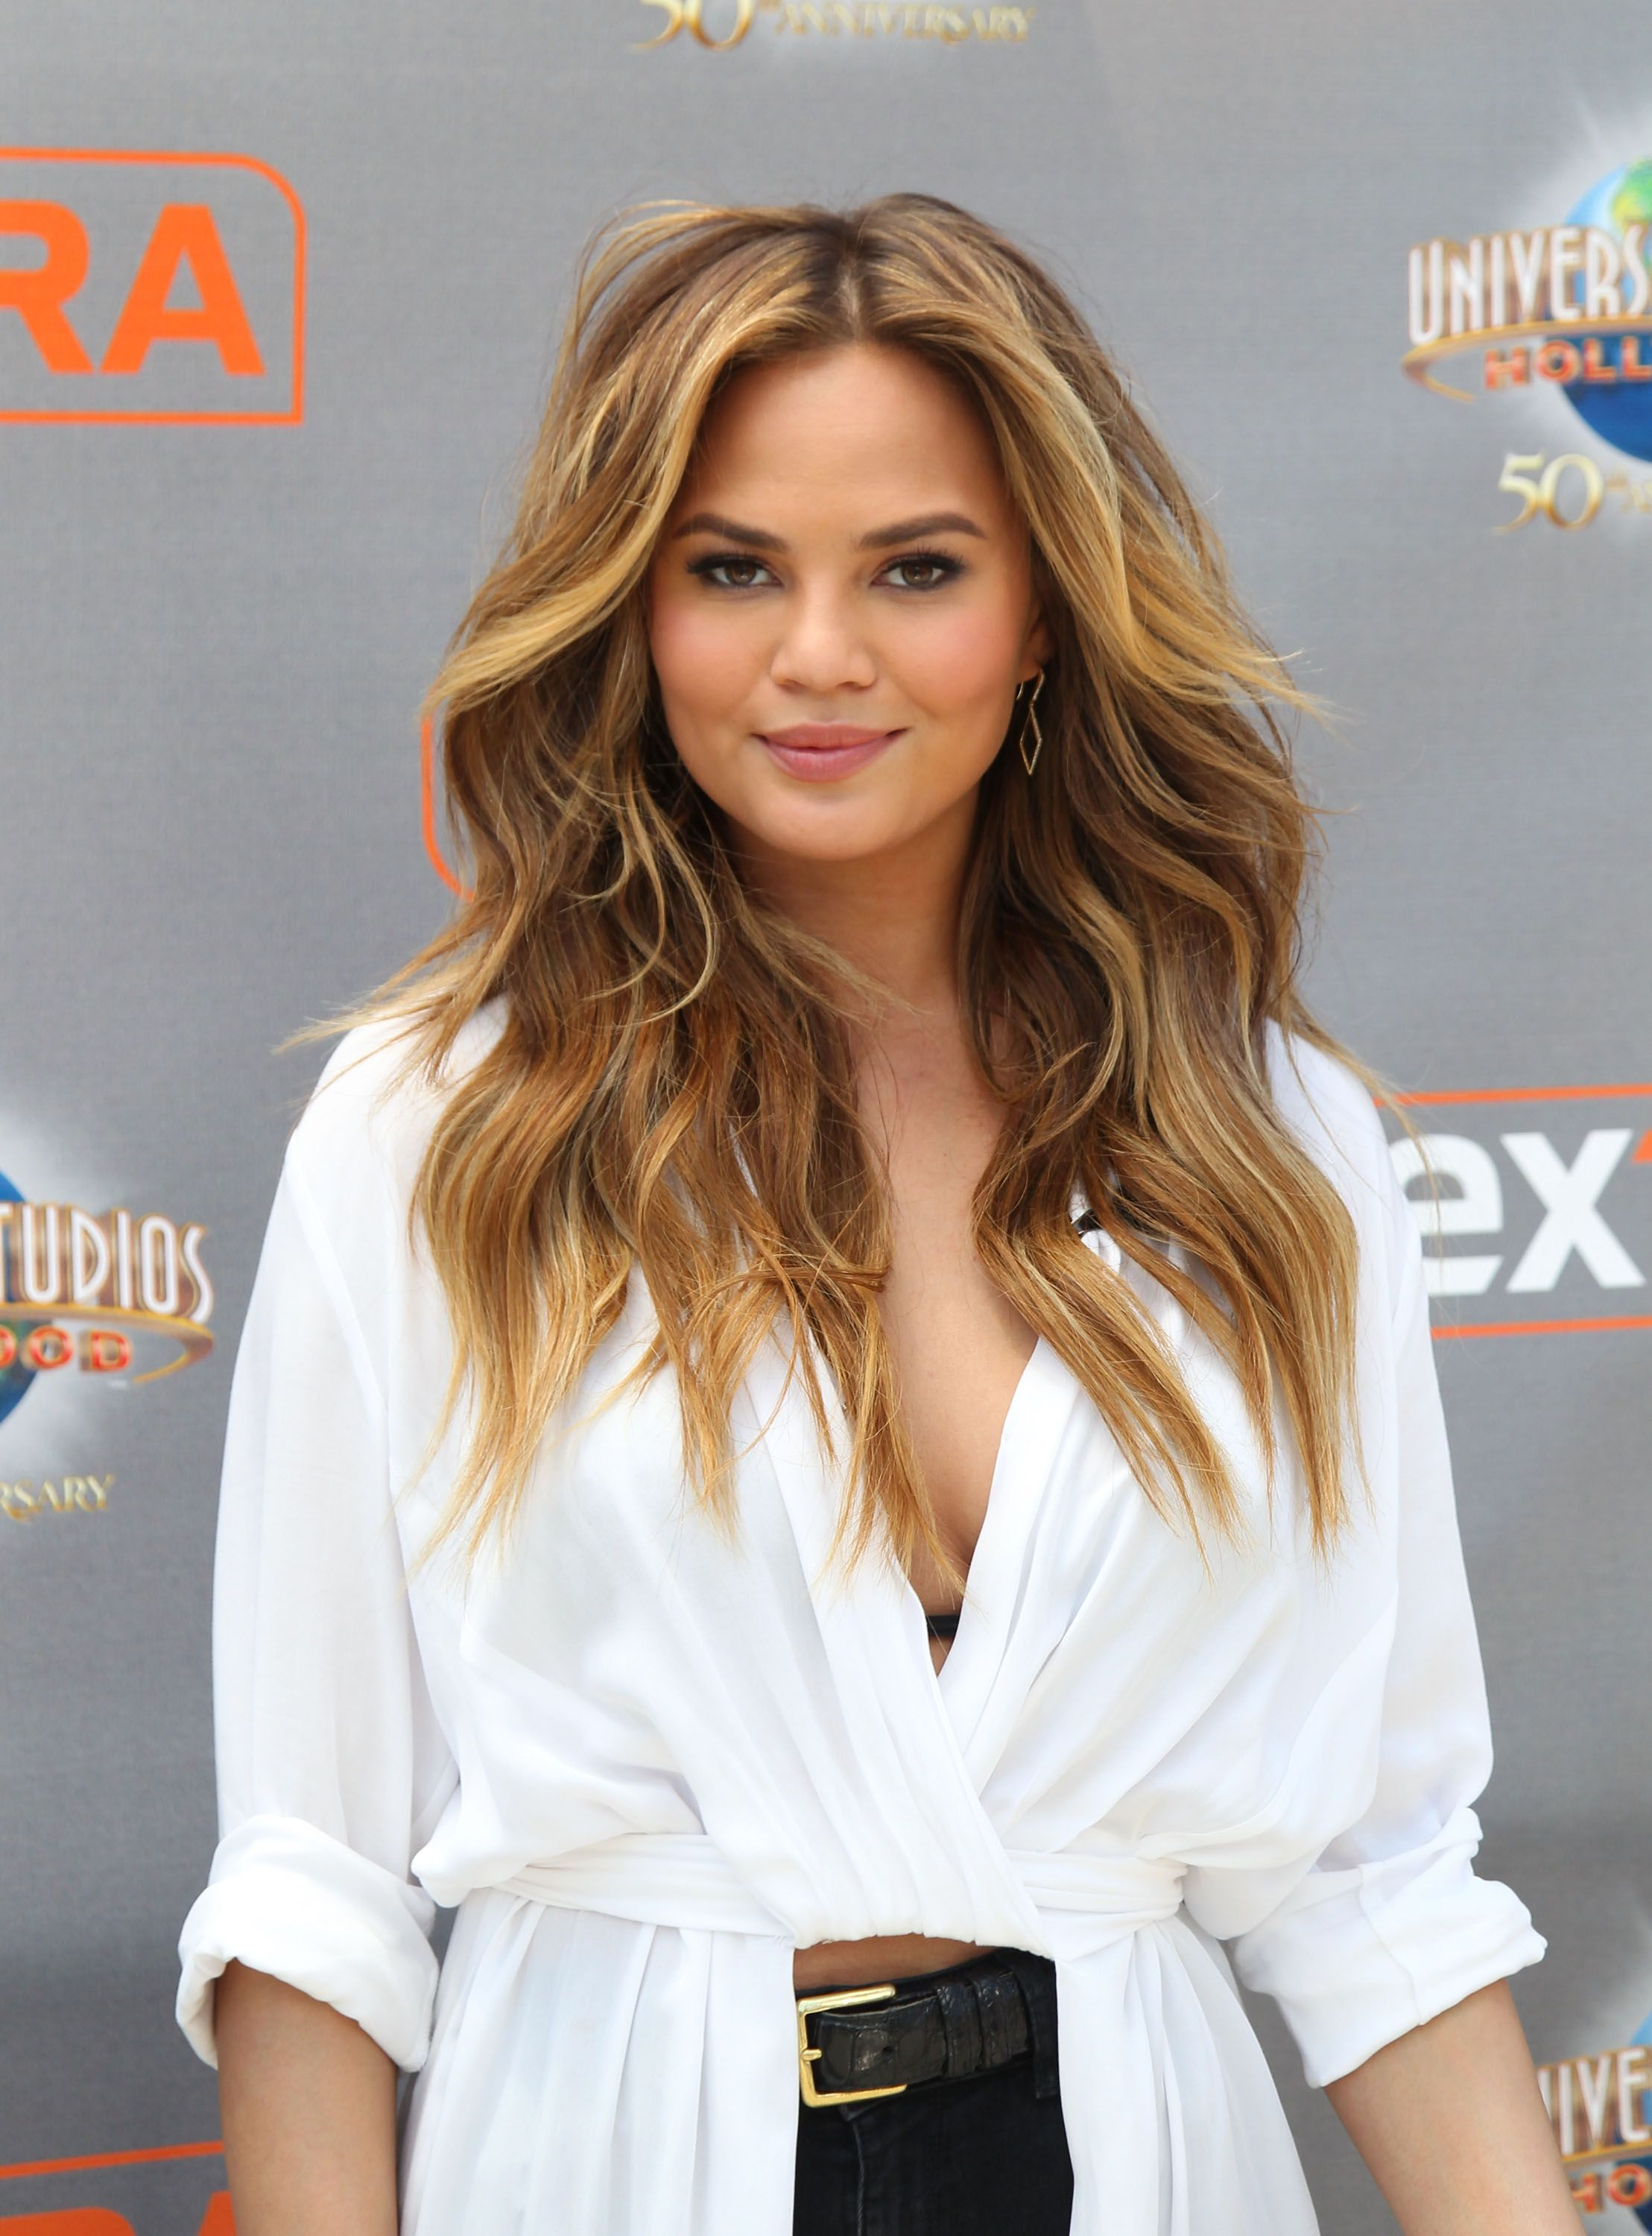 """Chrissy Teigen visits """"Extra"""" at Universal Studios Hollywood on May 20, 2015 in Universal City, California 